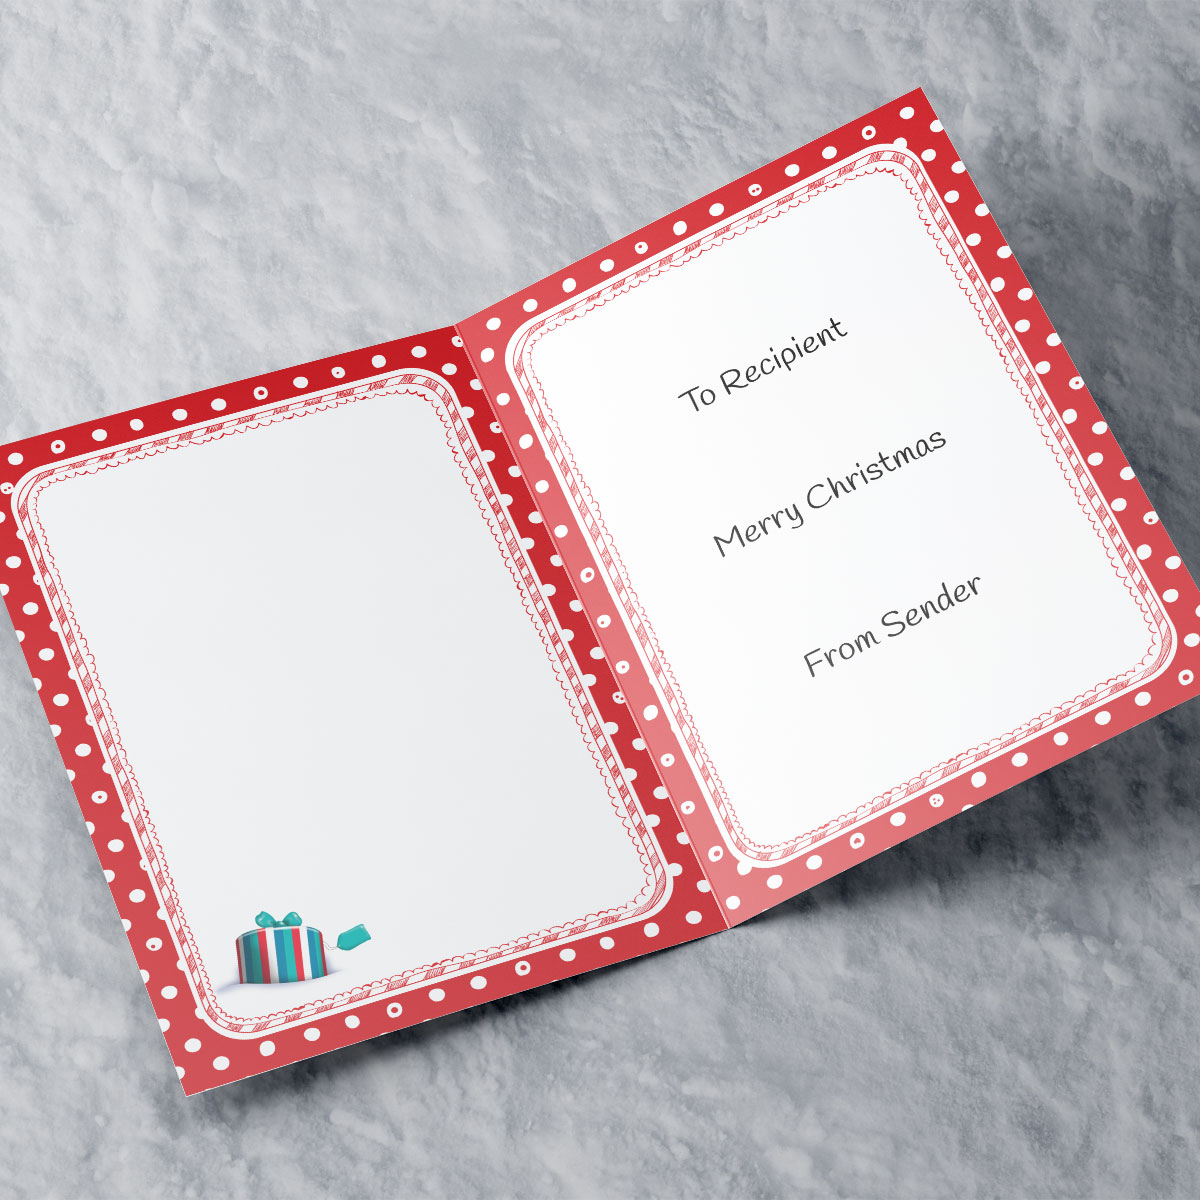 Hugs Personalised Christmas Card - Husband's Grotto